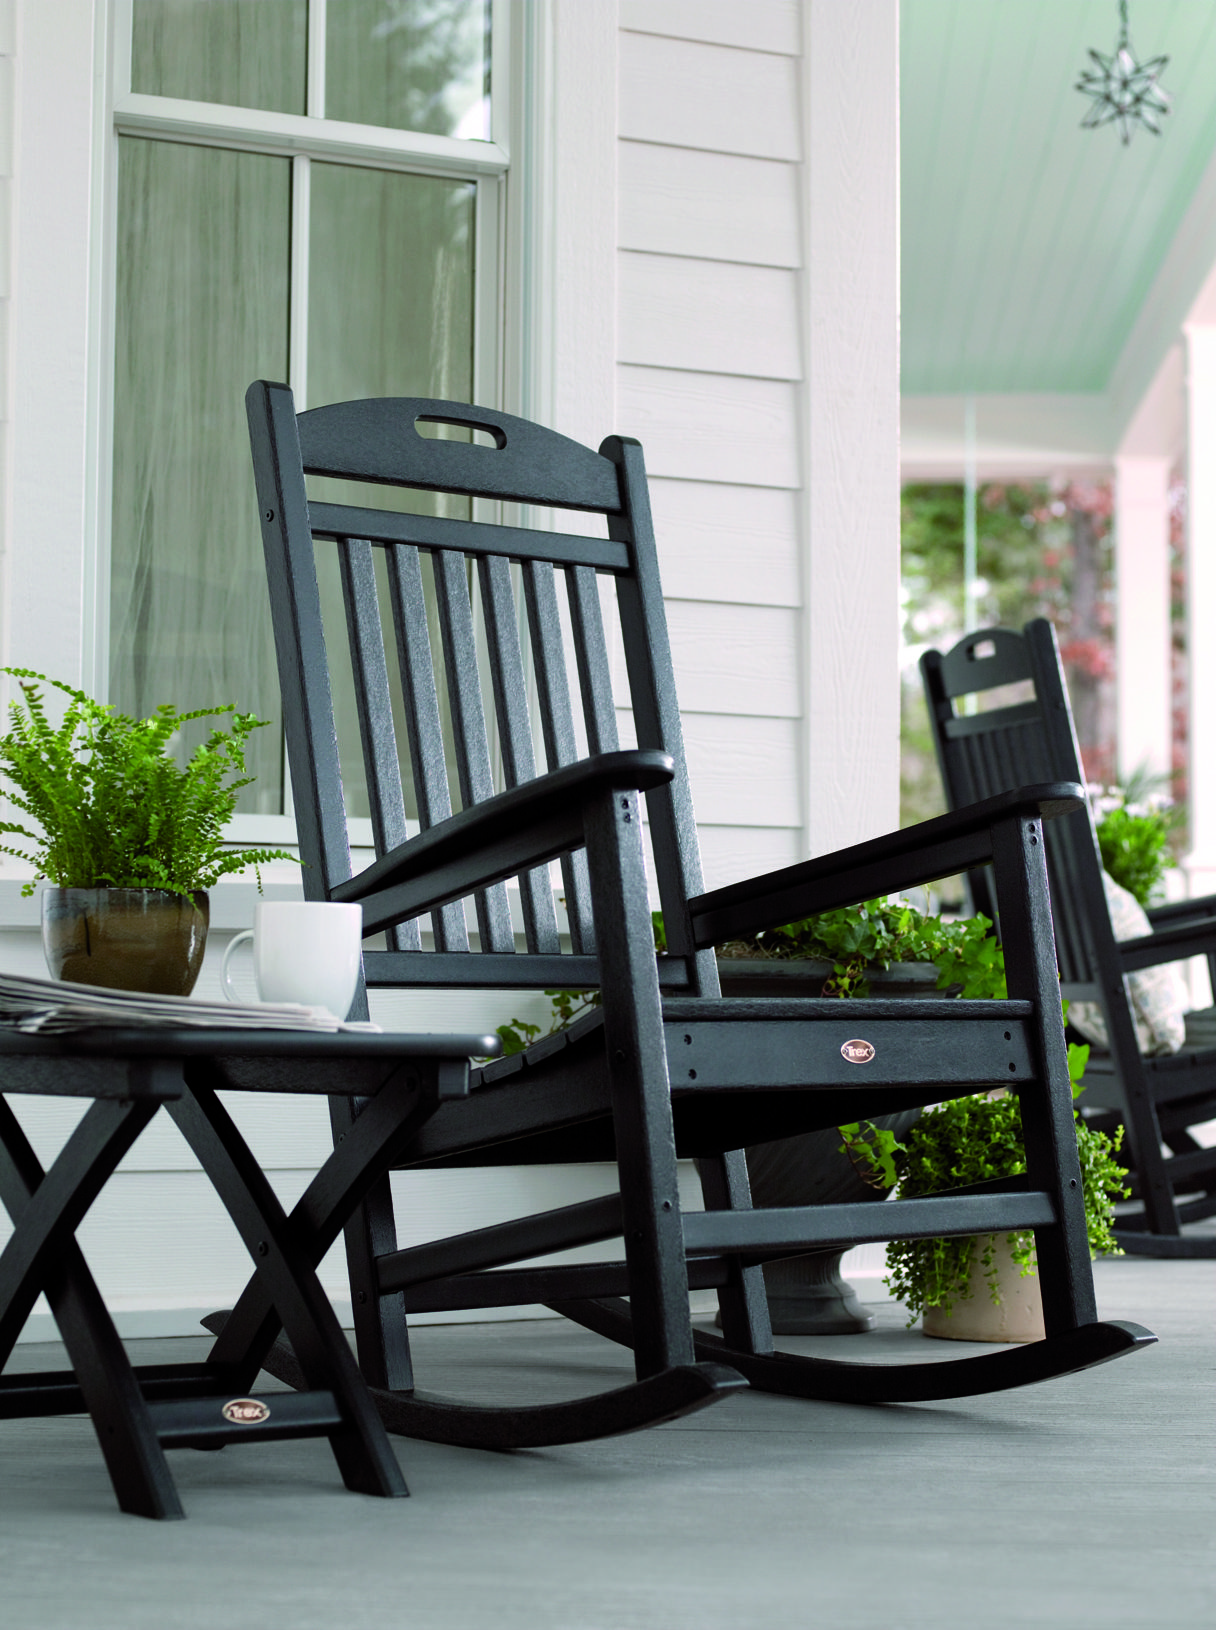 Patio Furniture Rocking Chair Rocking Chairs Outdoor